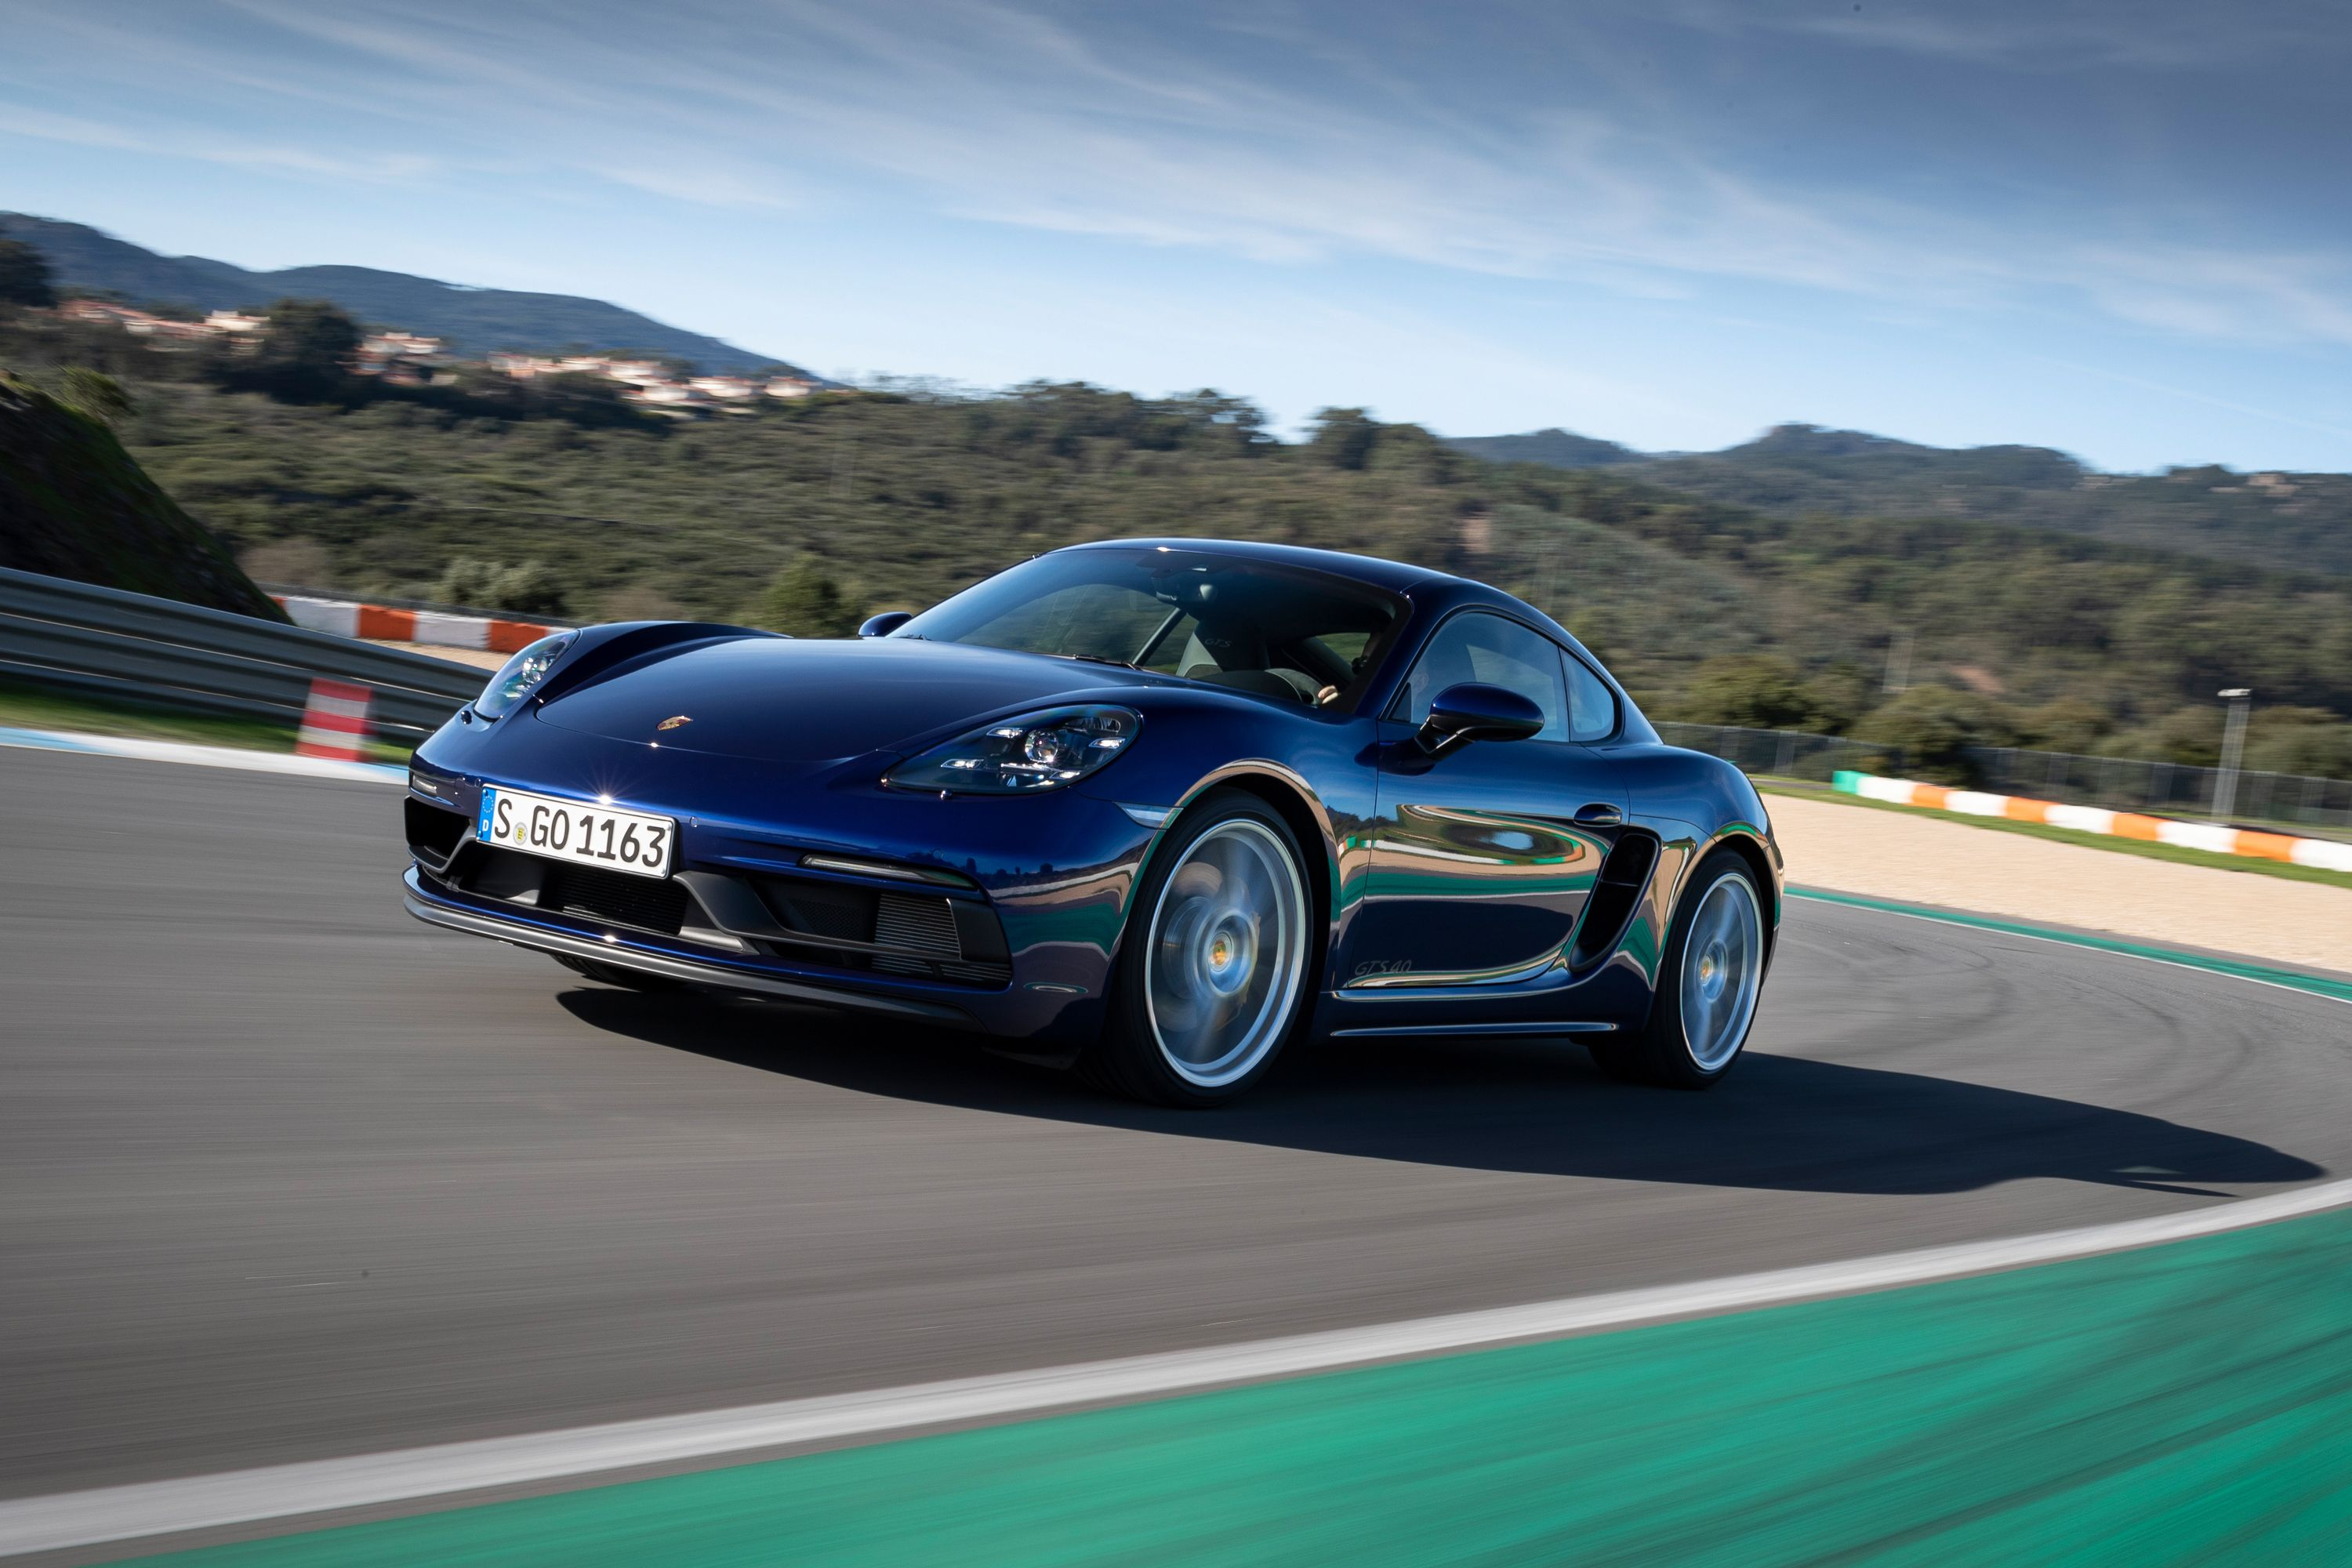 4 Porsche 4 Cayman Review, Pricing, and Specs